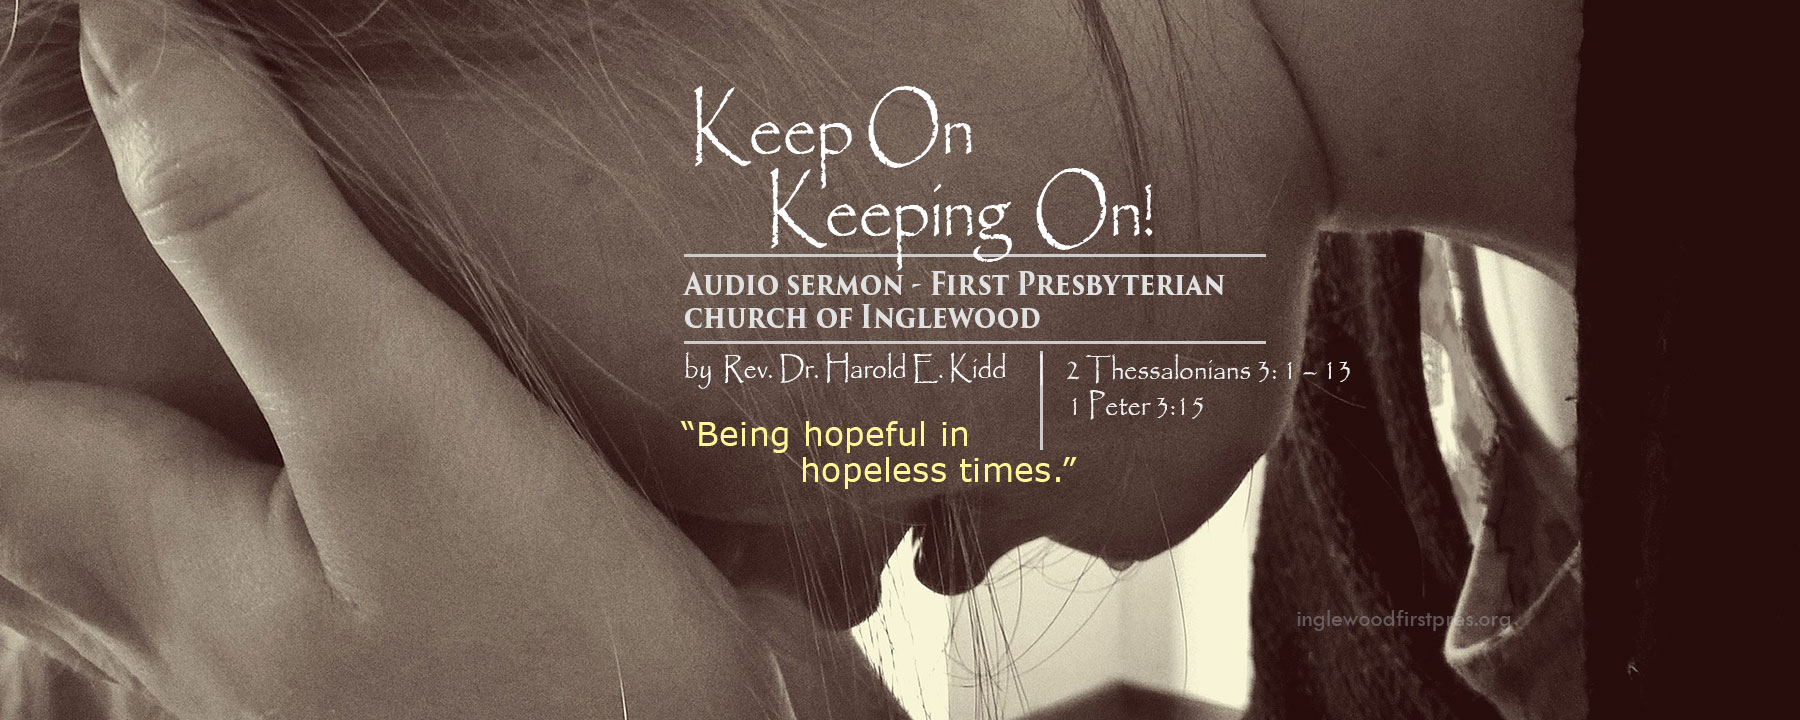 AUDIO SERMON: Hopelessness / Keep on Keeping on by Rev. Dr. Harold E. Kidd (2 Thessalonians 3: 1 – 13, 1 Peter 3:15)